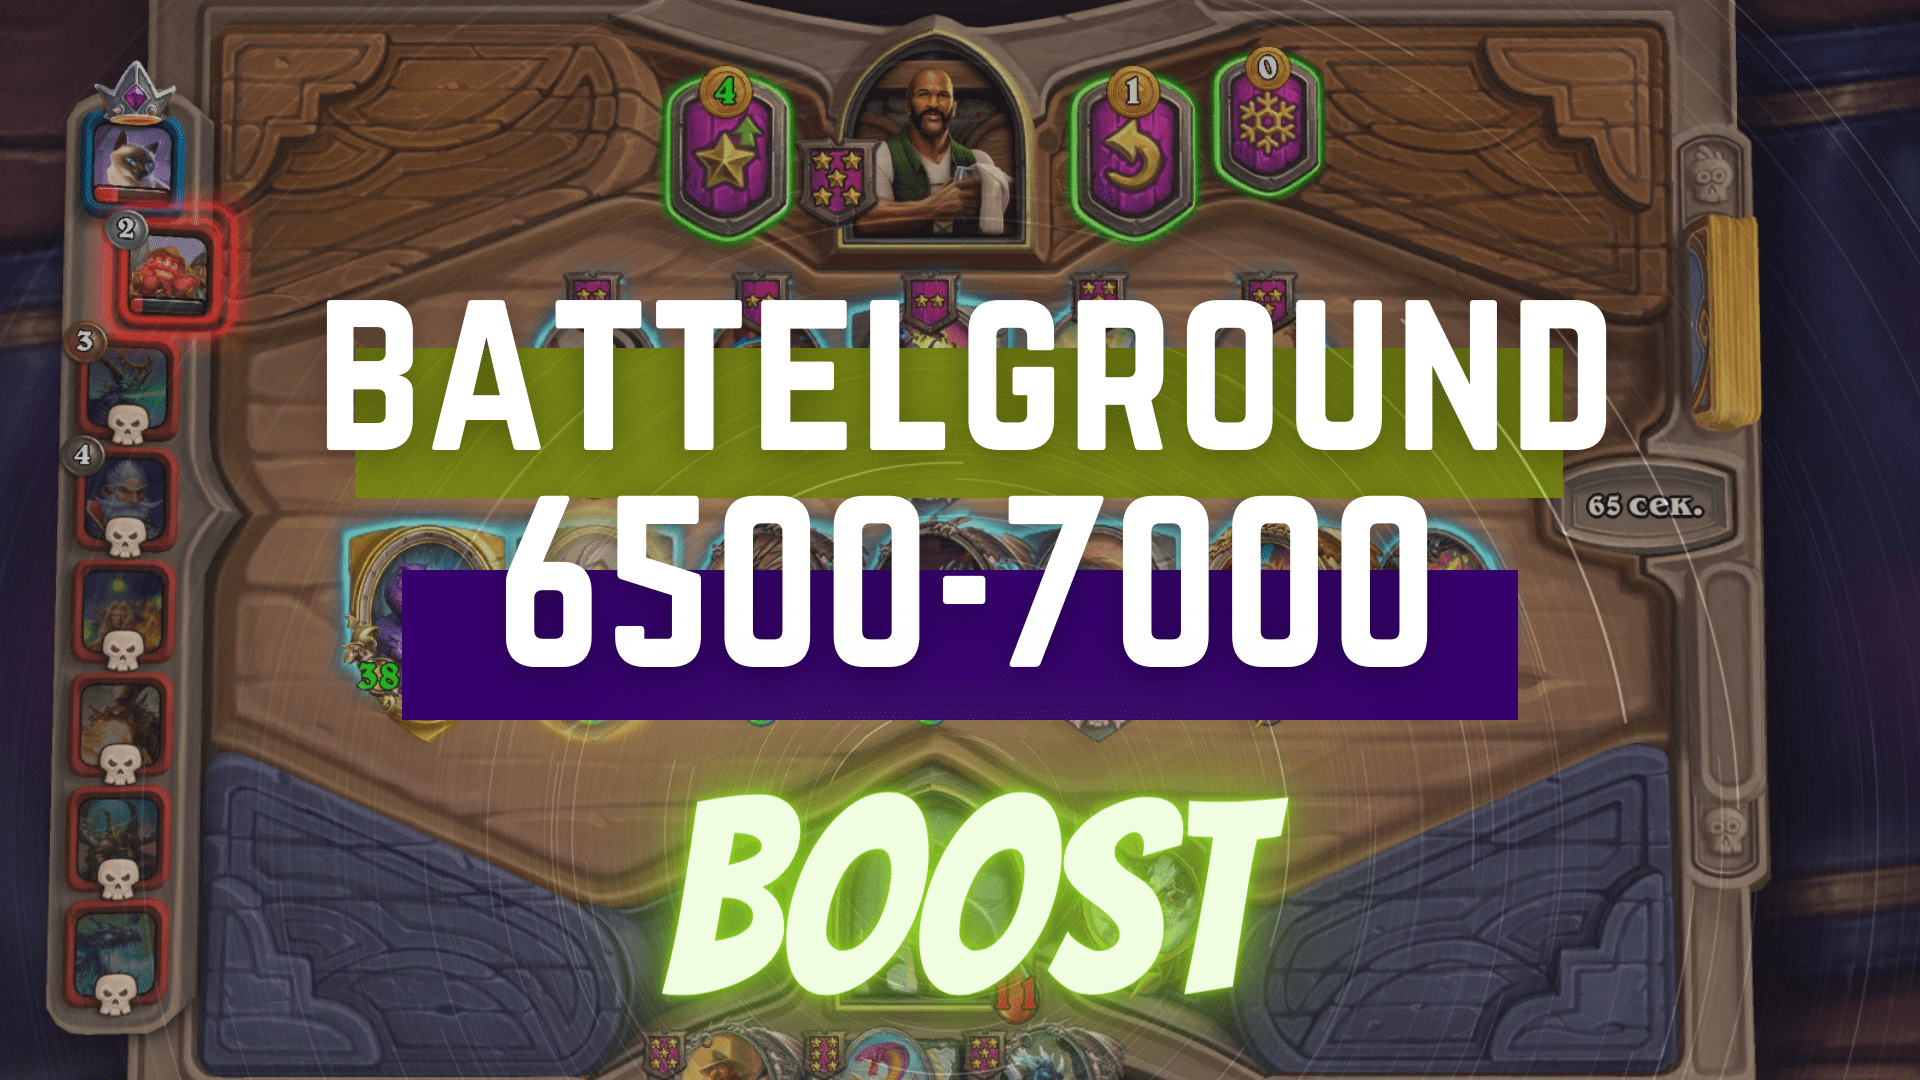 [BATTLEGROUNDS RATING] BOOST FROM 6500 TO 7000 GBD - e2p.com